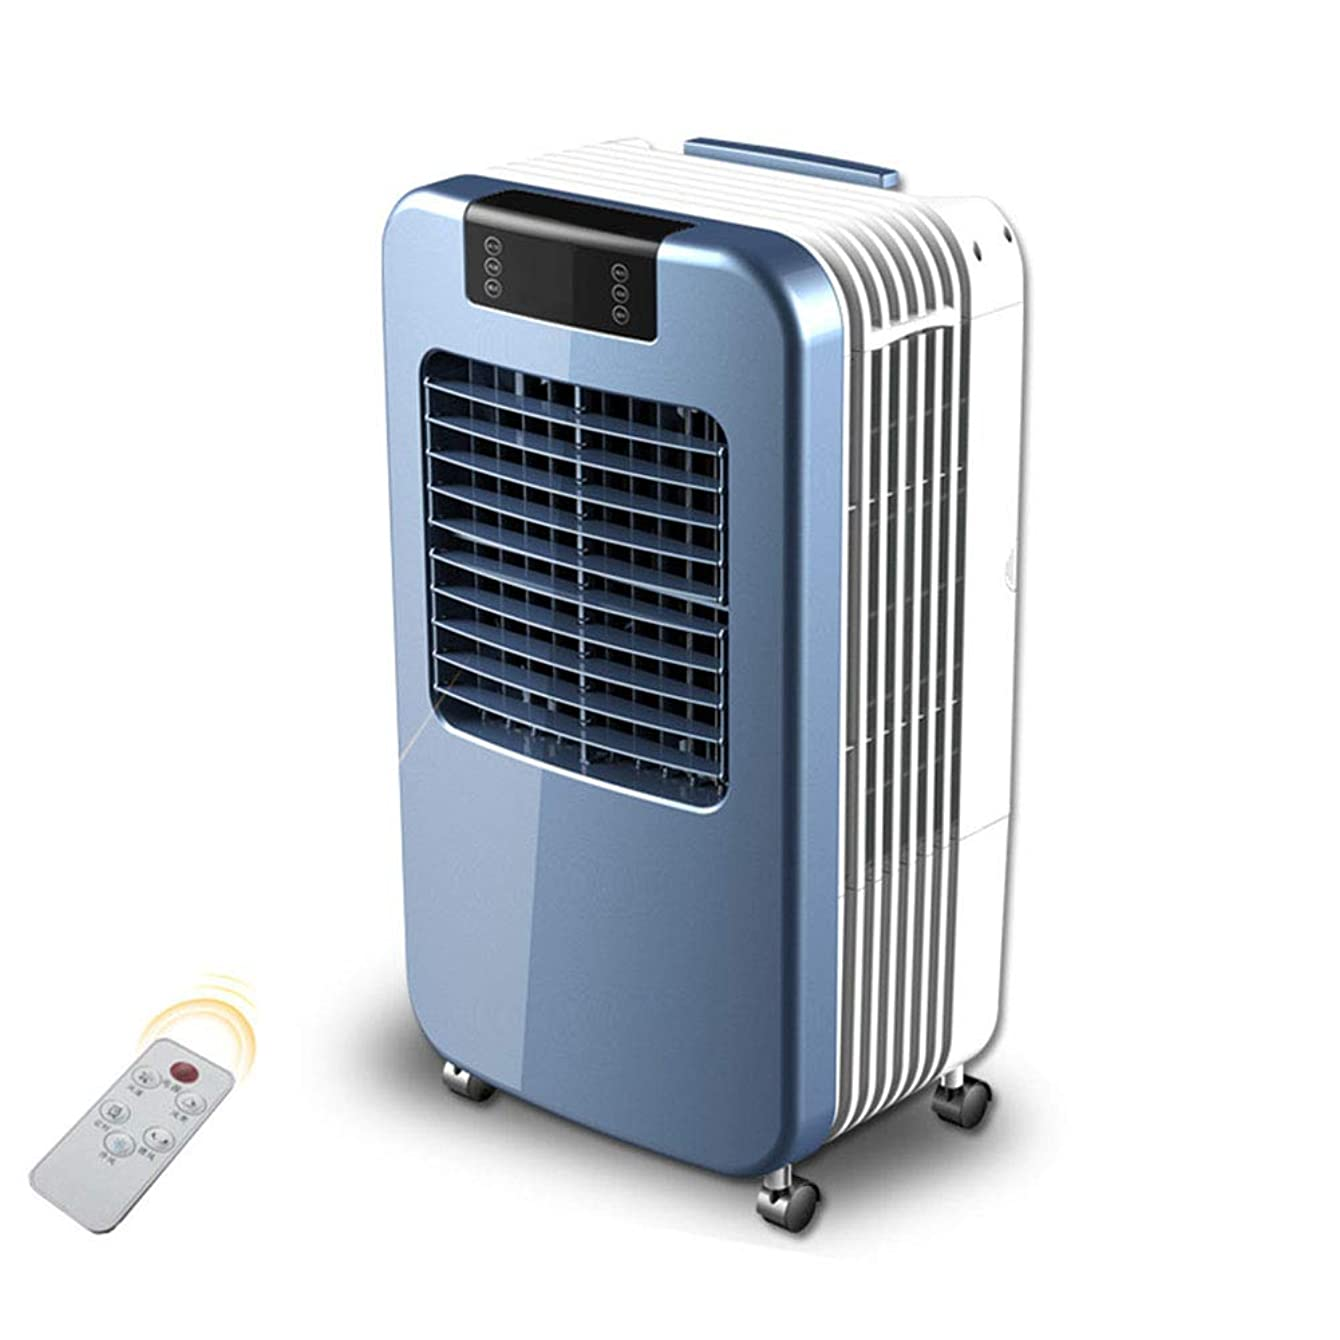 Air Cooler Industrial Evaporative Portable Indoor Humidifier Or Fan, Intelligent Remote Control, 30l Large Capacity Water Tank